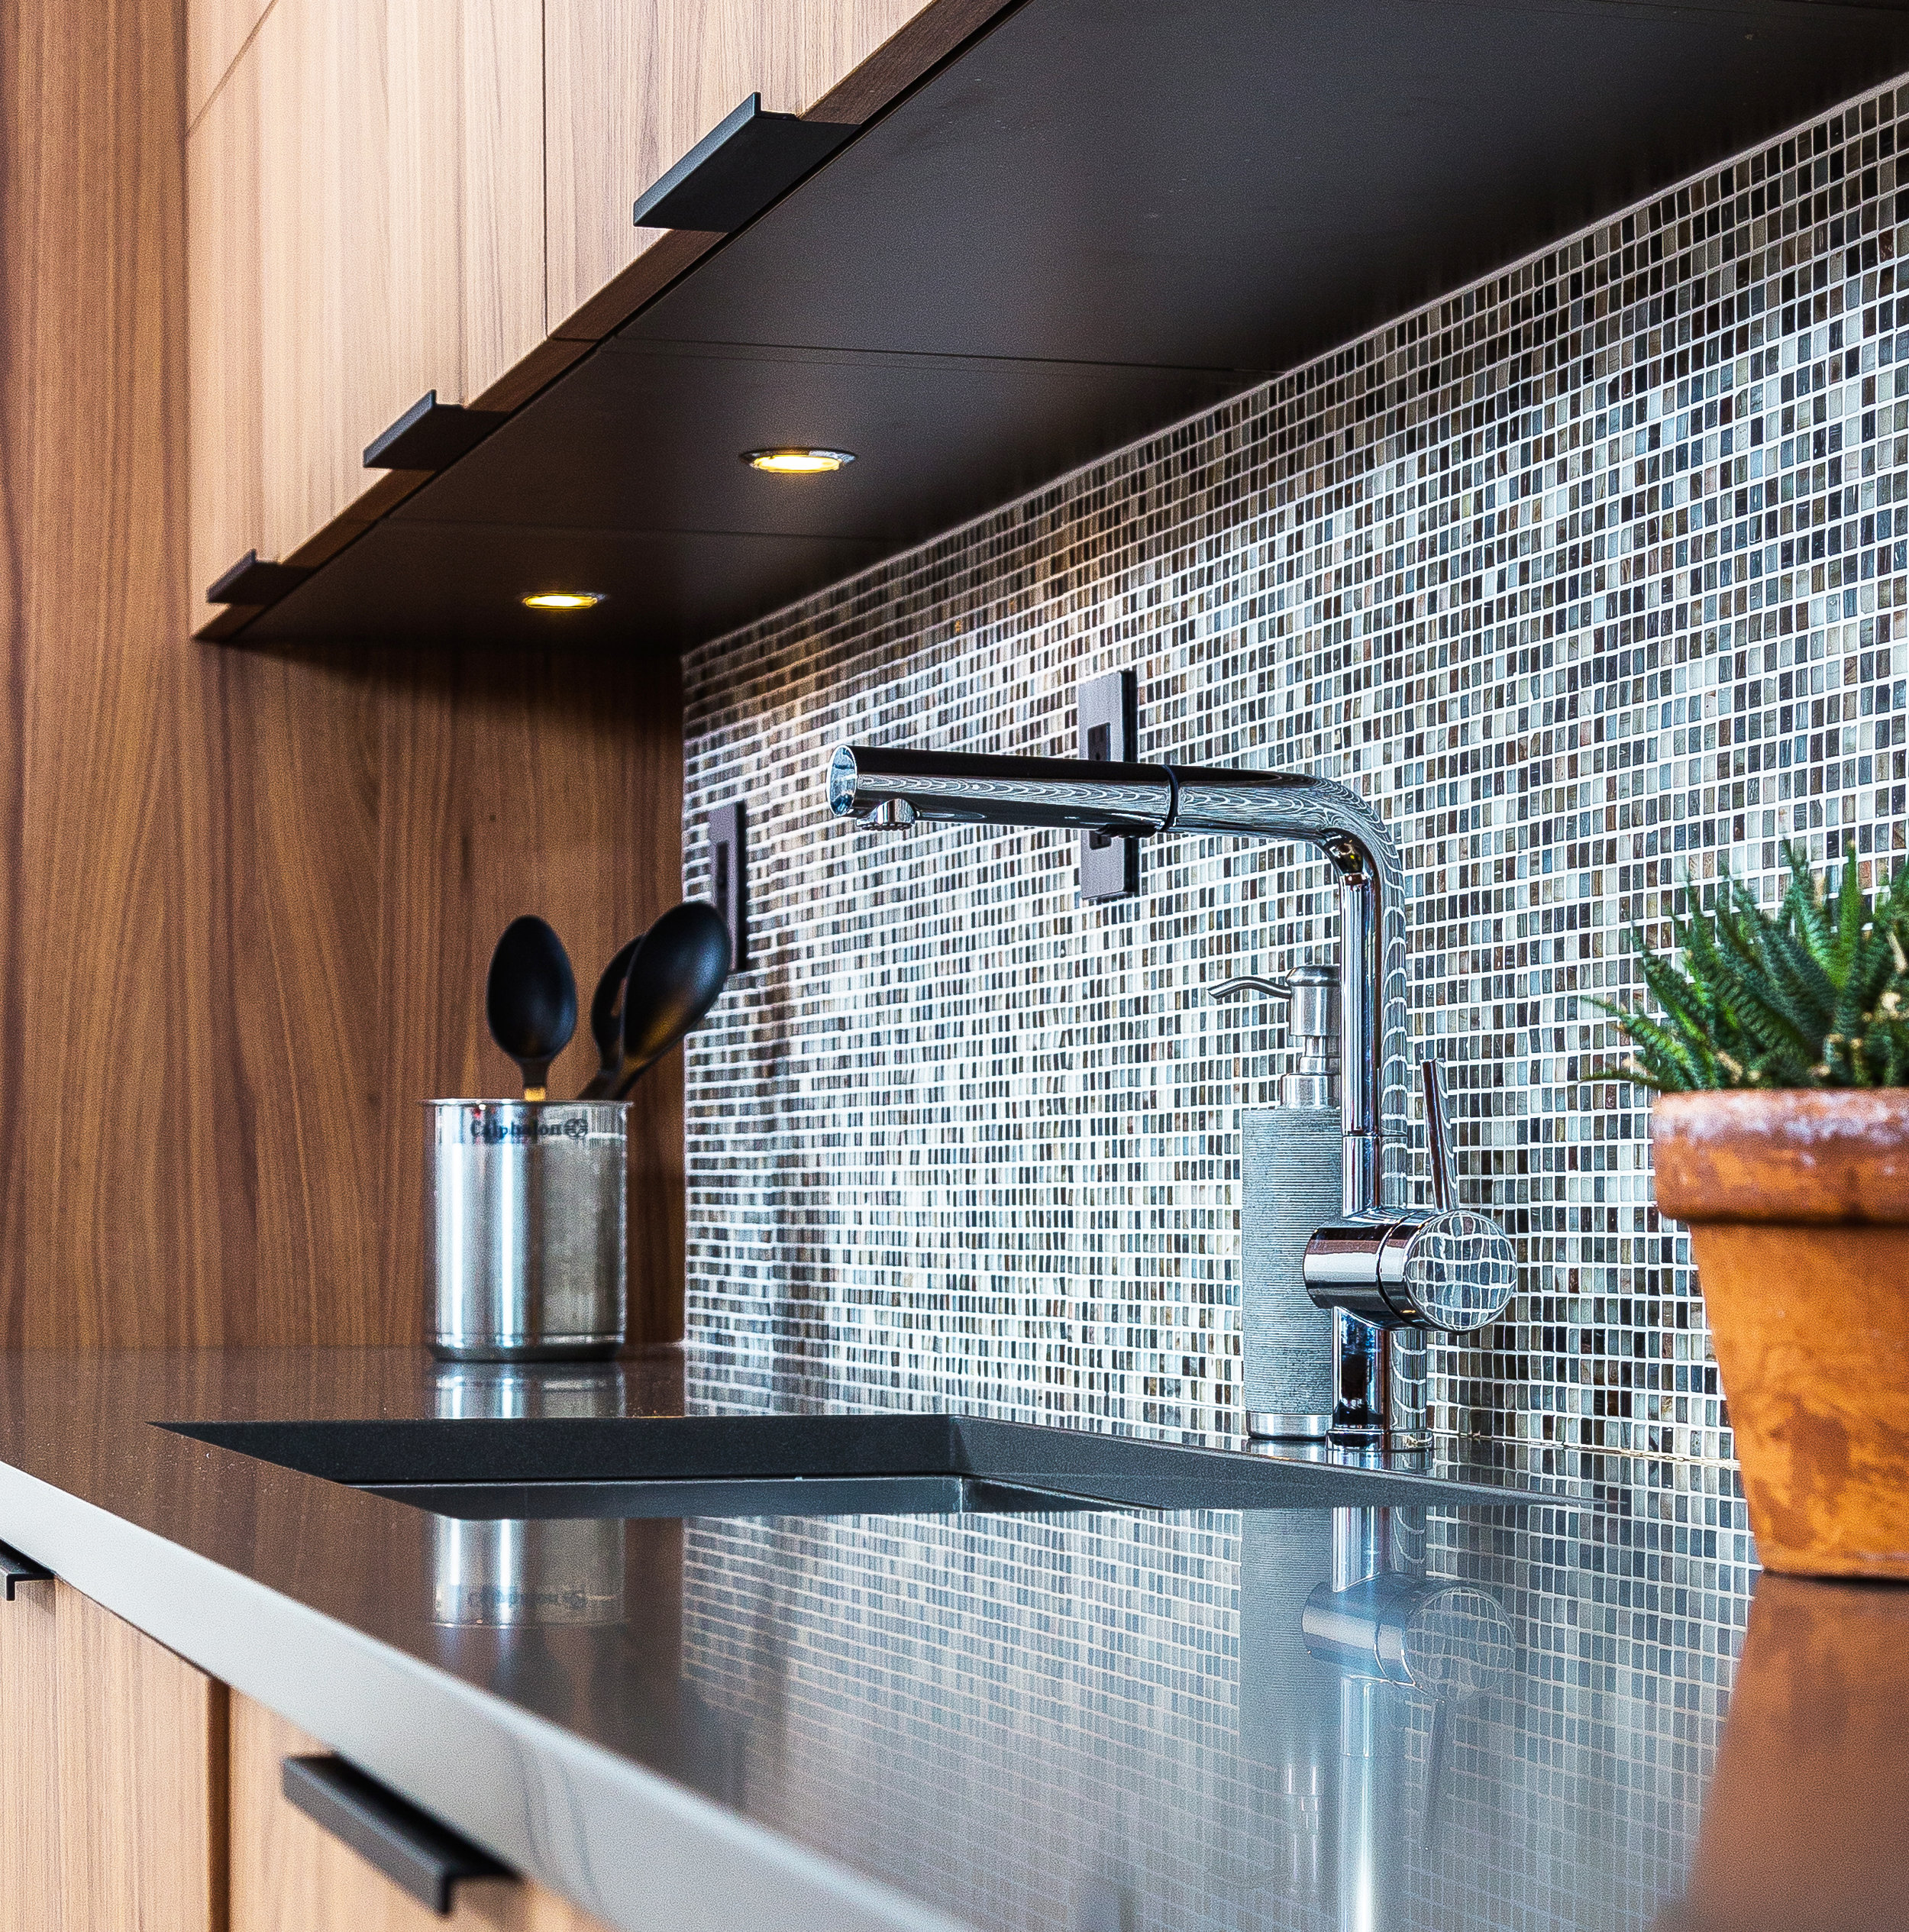 Contemporary style kitchen with small tiled backsplash